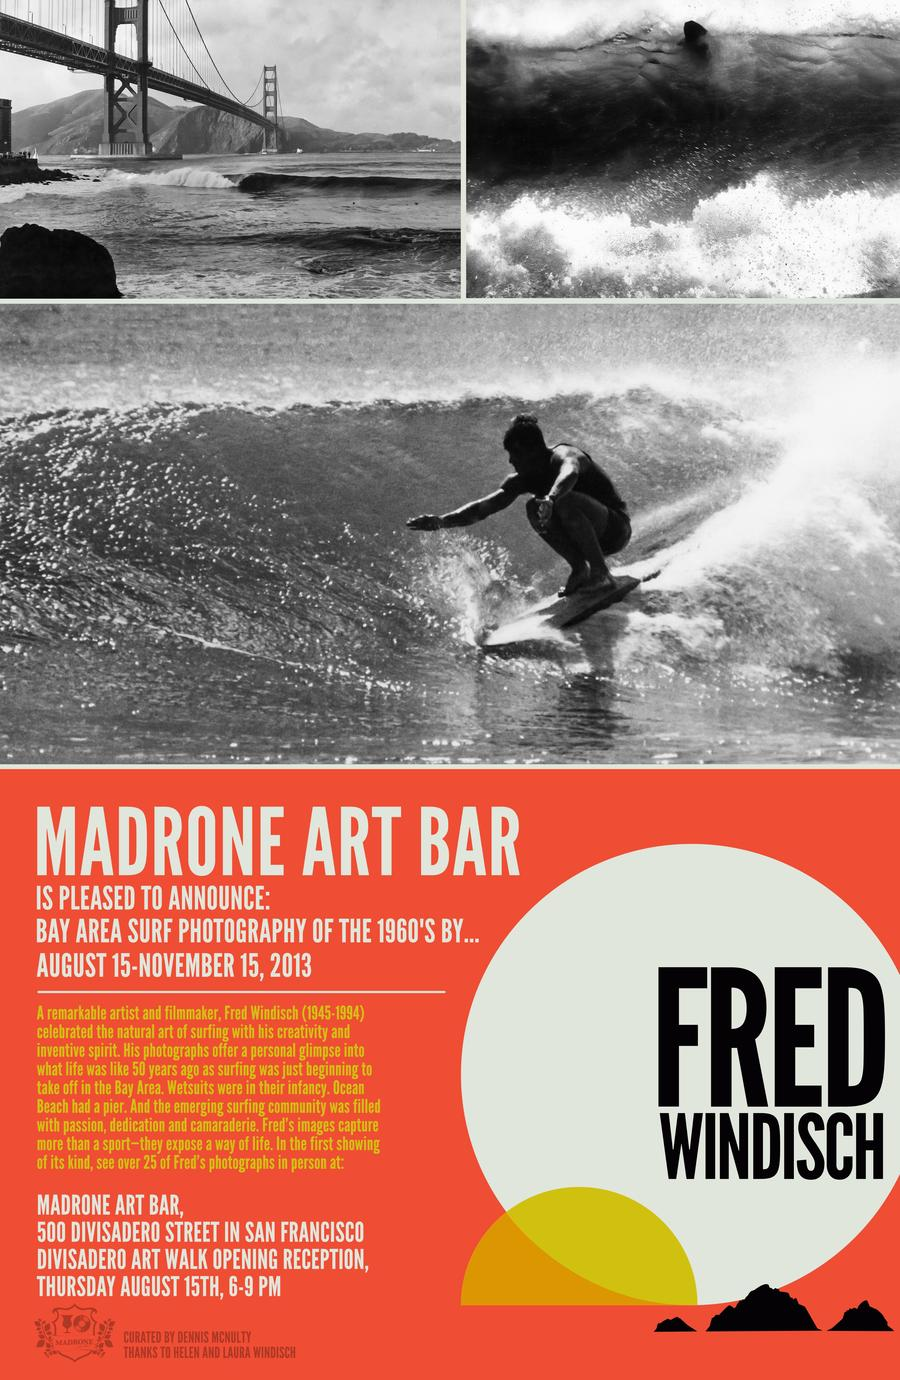 This Thursday at Madrone Art Bar come check out the opening of Fred Windisch's surf photography exhibit from 6 PM - 9 PM. The photographs we're taken in the 1960's, and they represent a unique era of San Francisco's surfing history.